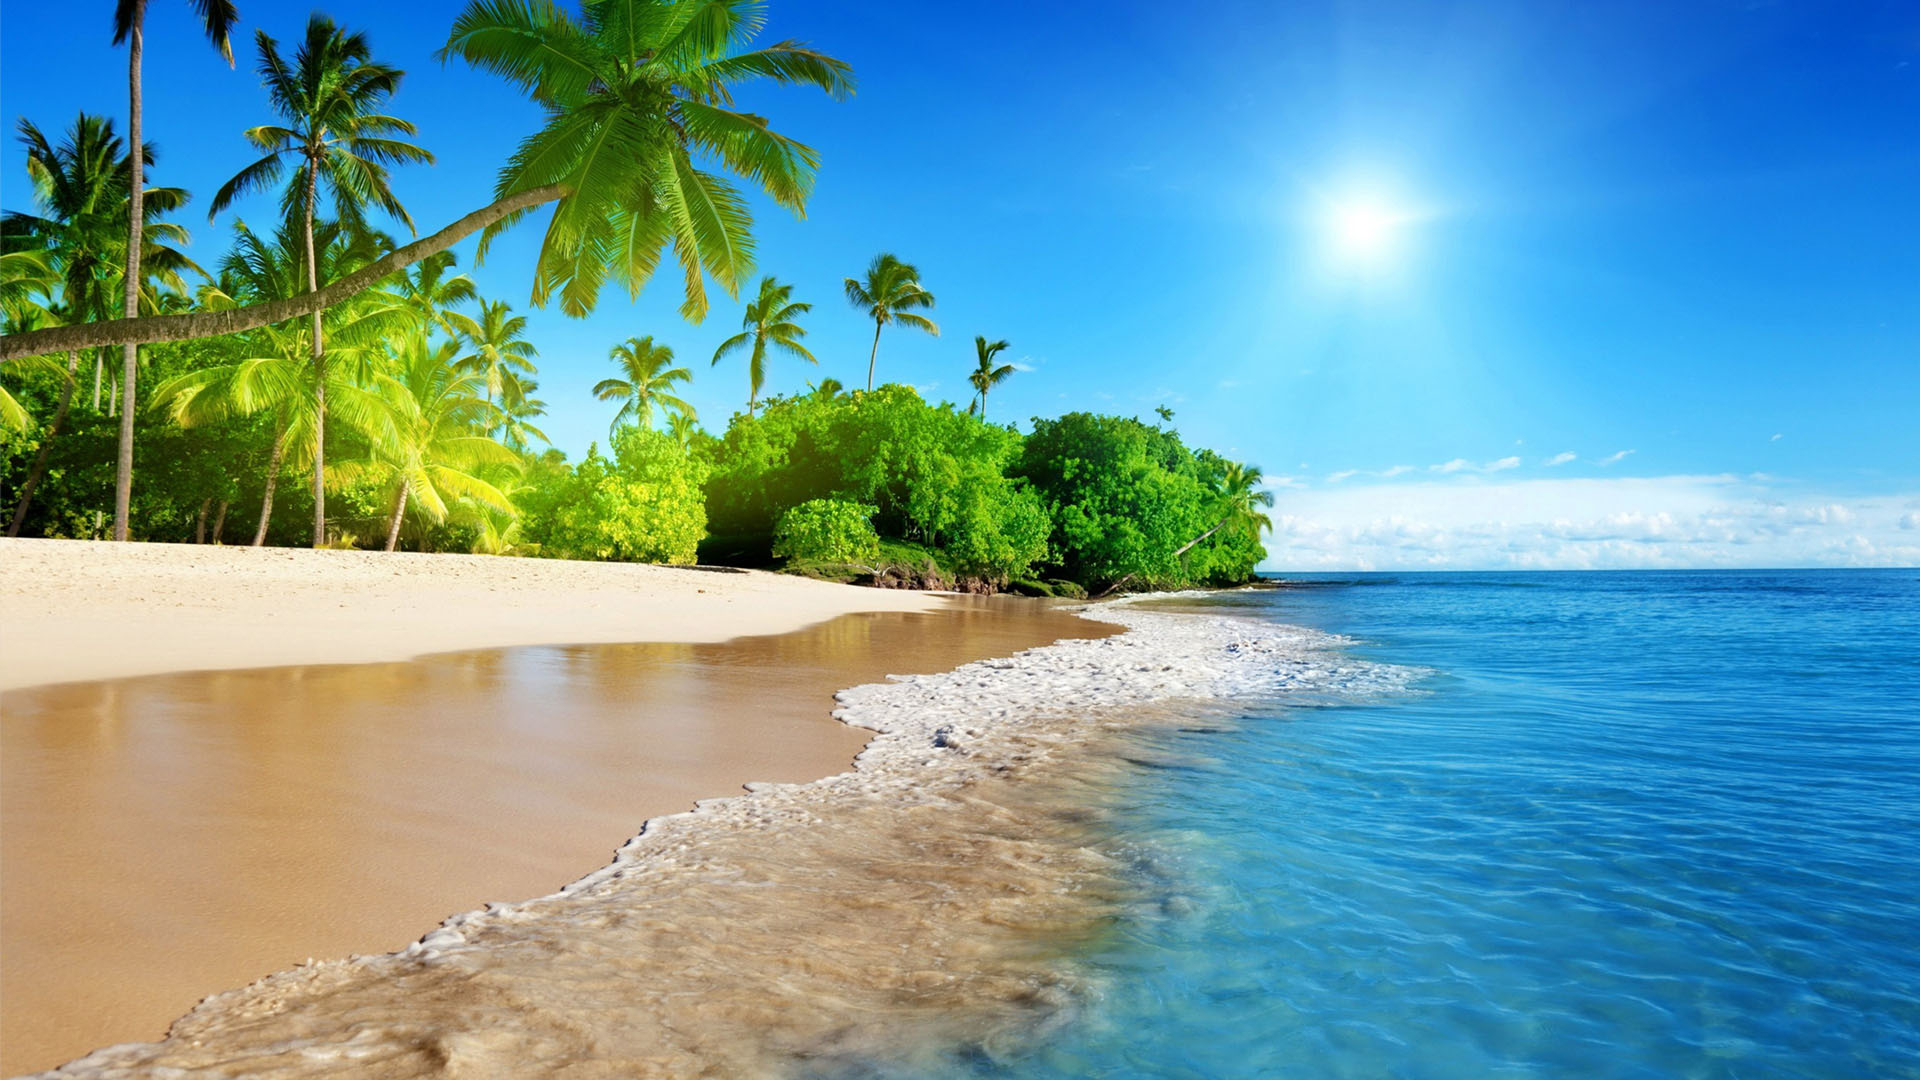 awesome-beach-wallpaper-2 – followmikecee